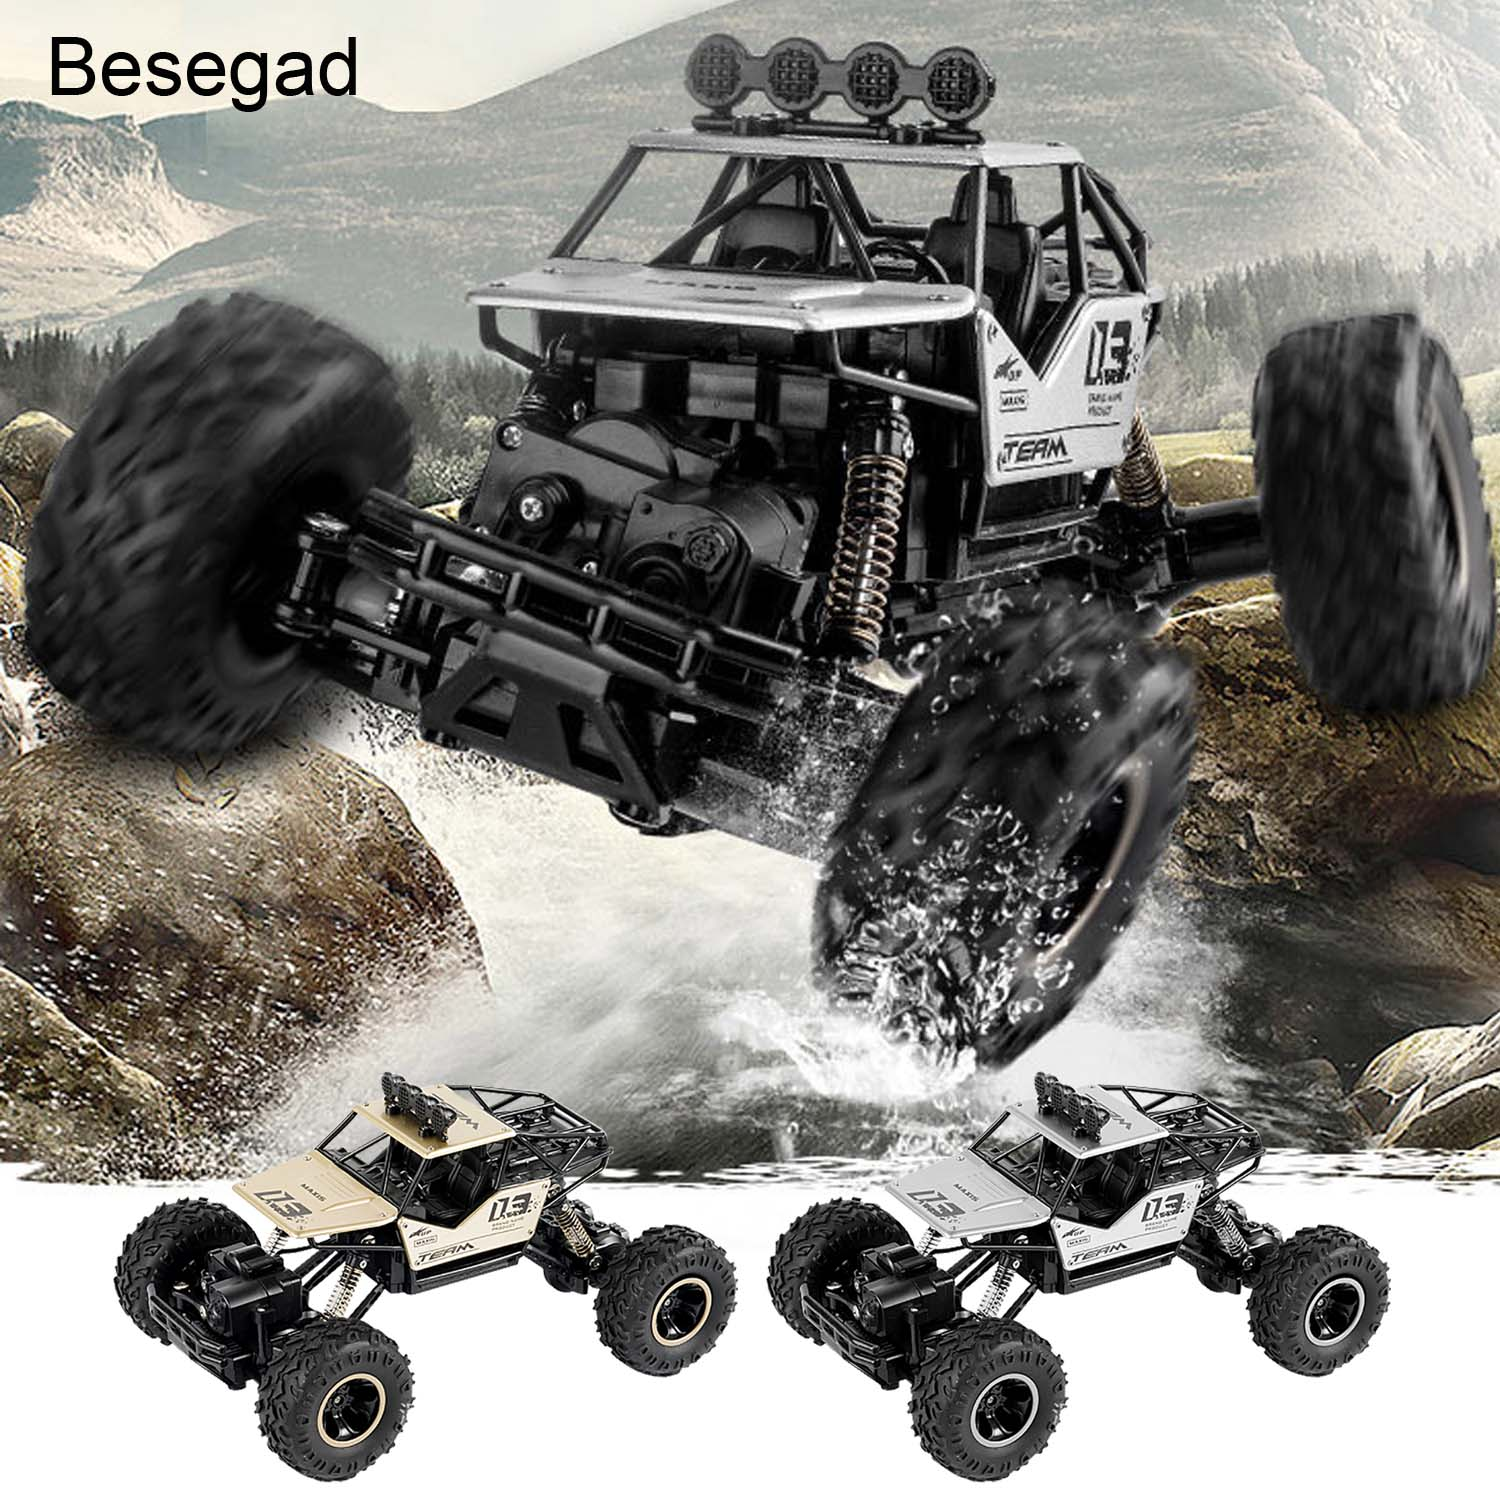 1:16 Scale High Speed Remote Control Electric Fast Racing Off Road Crawler Truck Vehicle RC Car Toy Kids Boys Christmas Gifts